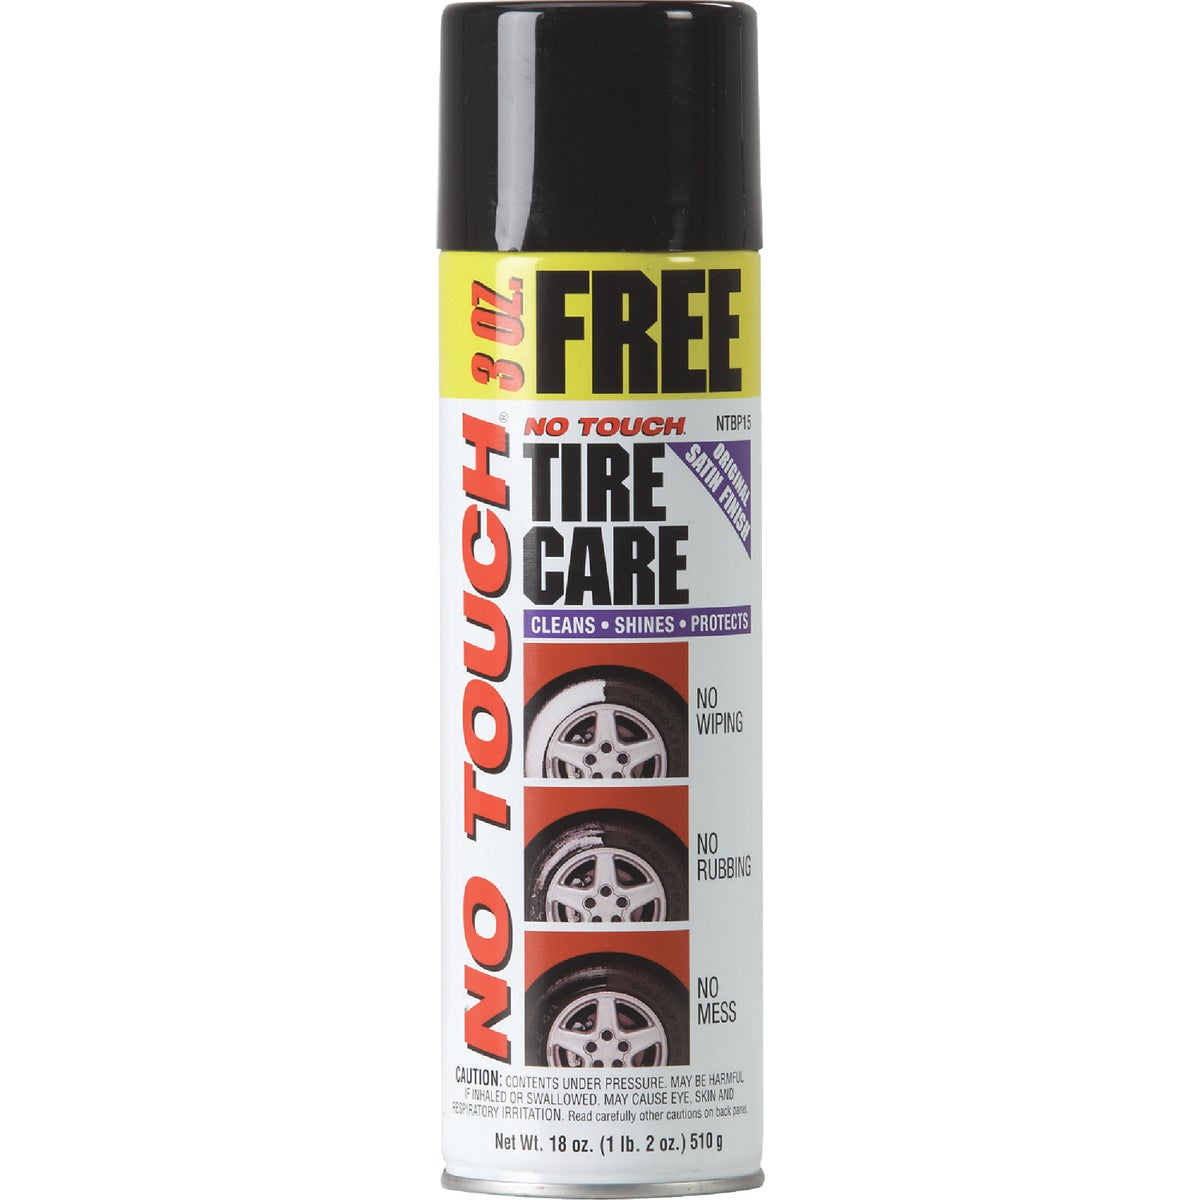 18OZ NT FOAM TIRE CARE - NTBP15-6 by Itw Global Brands